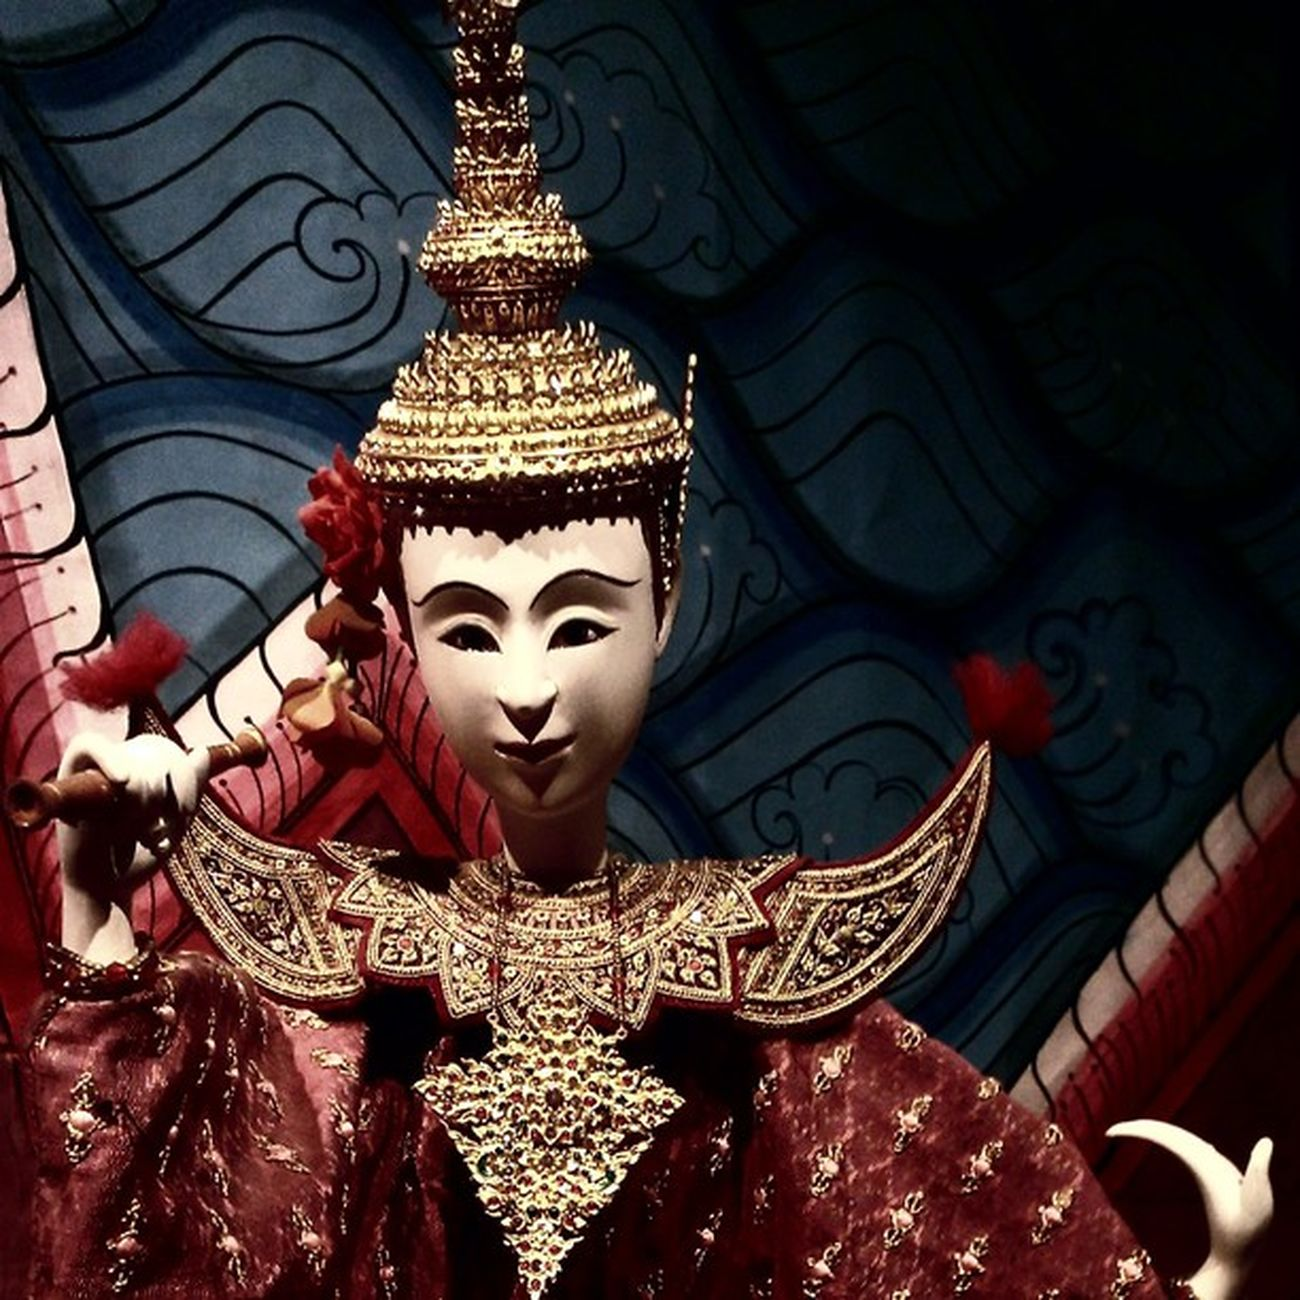 Thai's puppet @ Nitatrattanakosin exhibition hall Puppet Thailand Photooftheday Culture Craft Handcraft Itsdagram Gorgeous Beautiful Graceful Htc8x WP8 Tradition